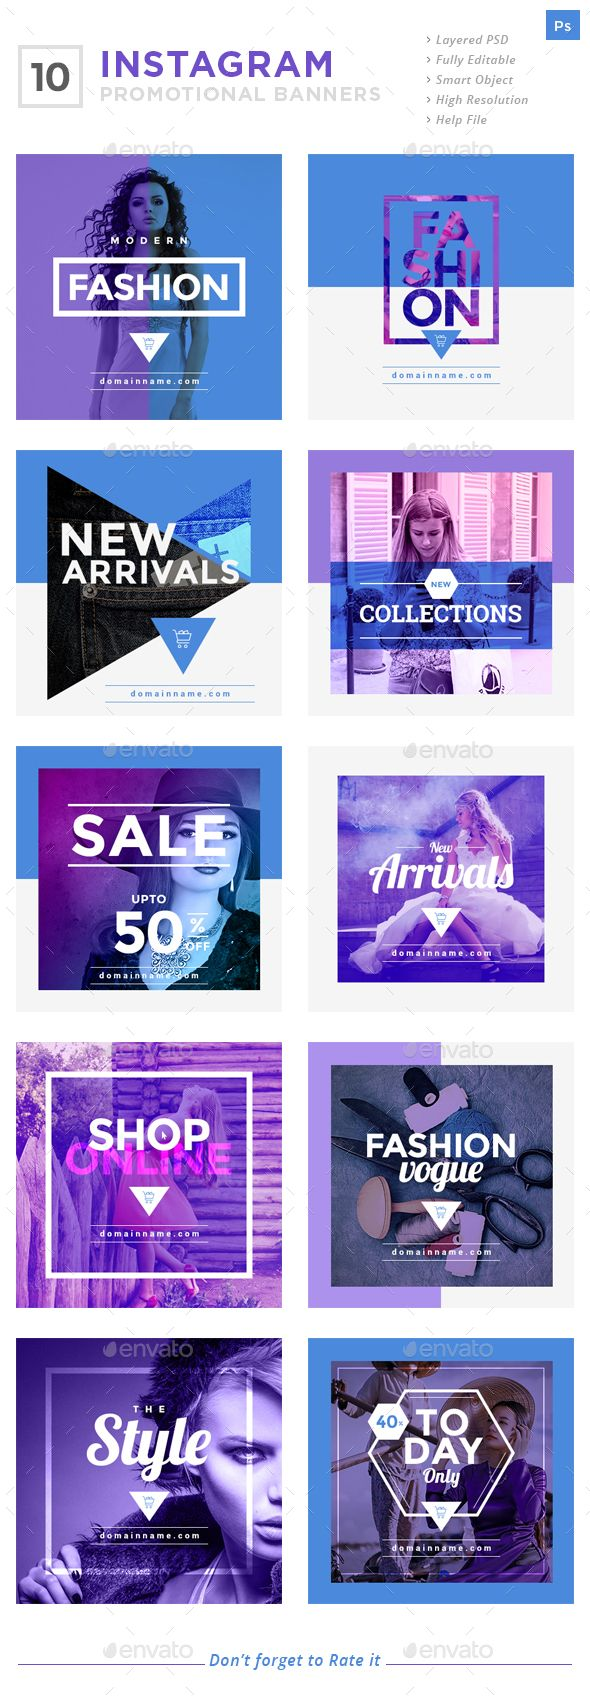 Instagram Promotional Banners - Social Media Web Elements - Tap the link to shop on our official online store! You can also join our affiliate and/or rewards programs for FREE!